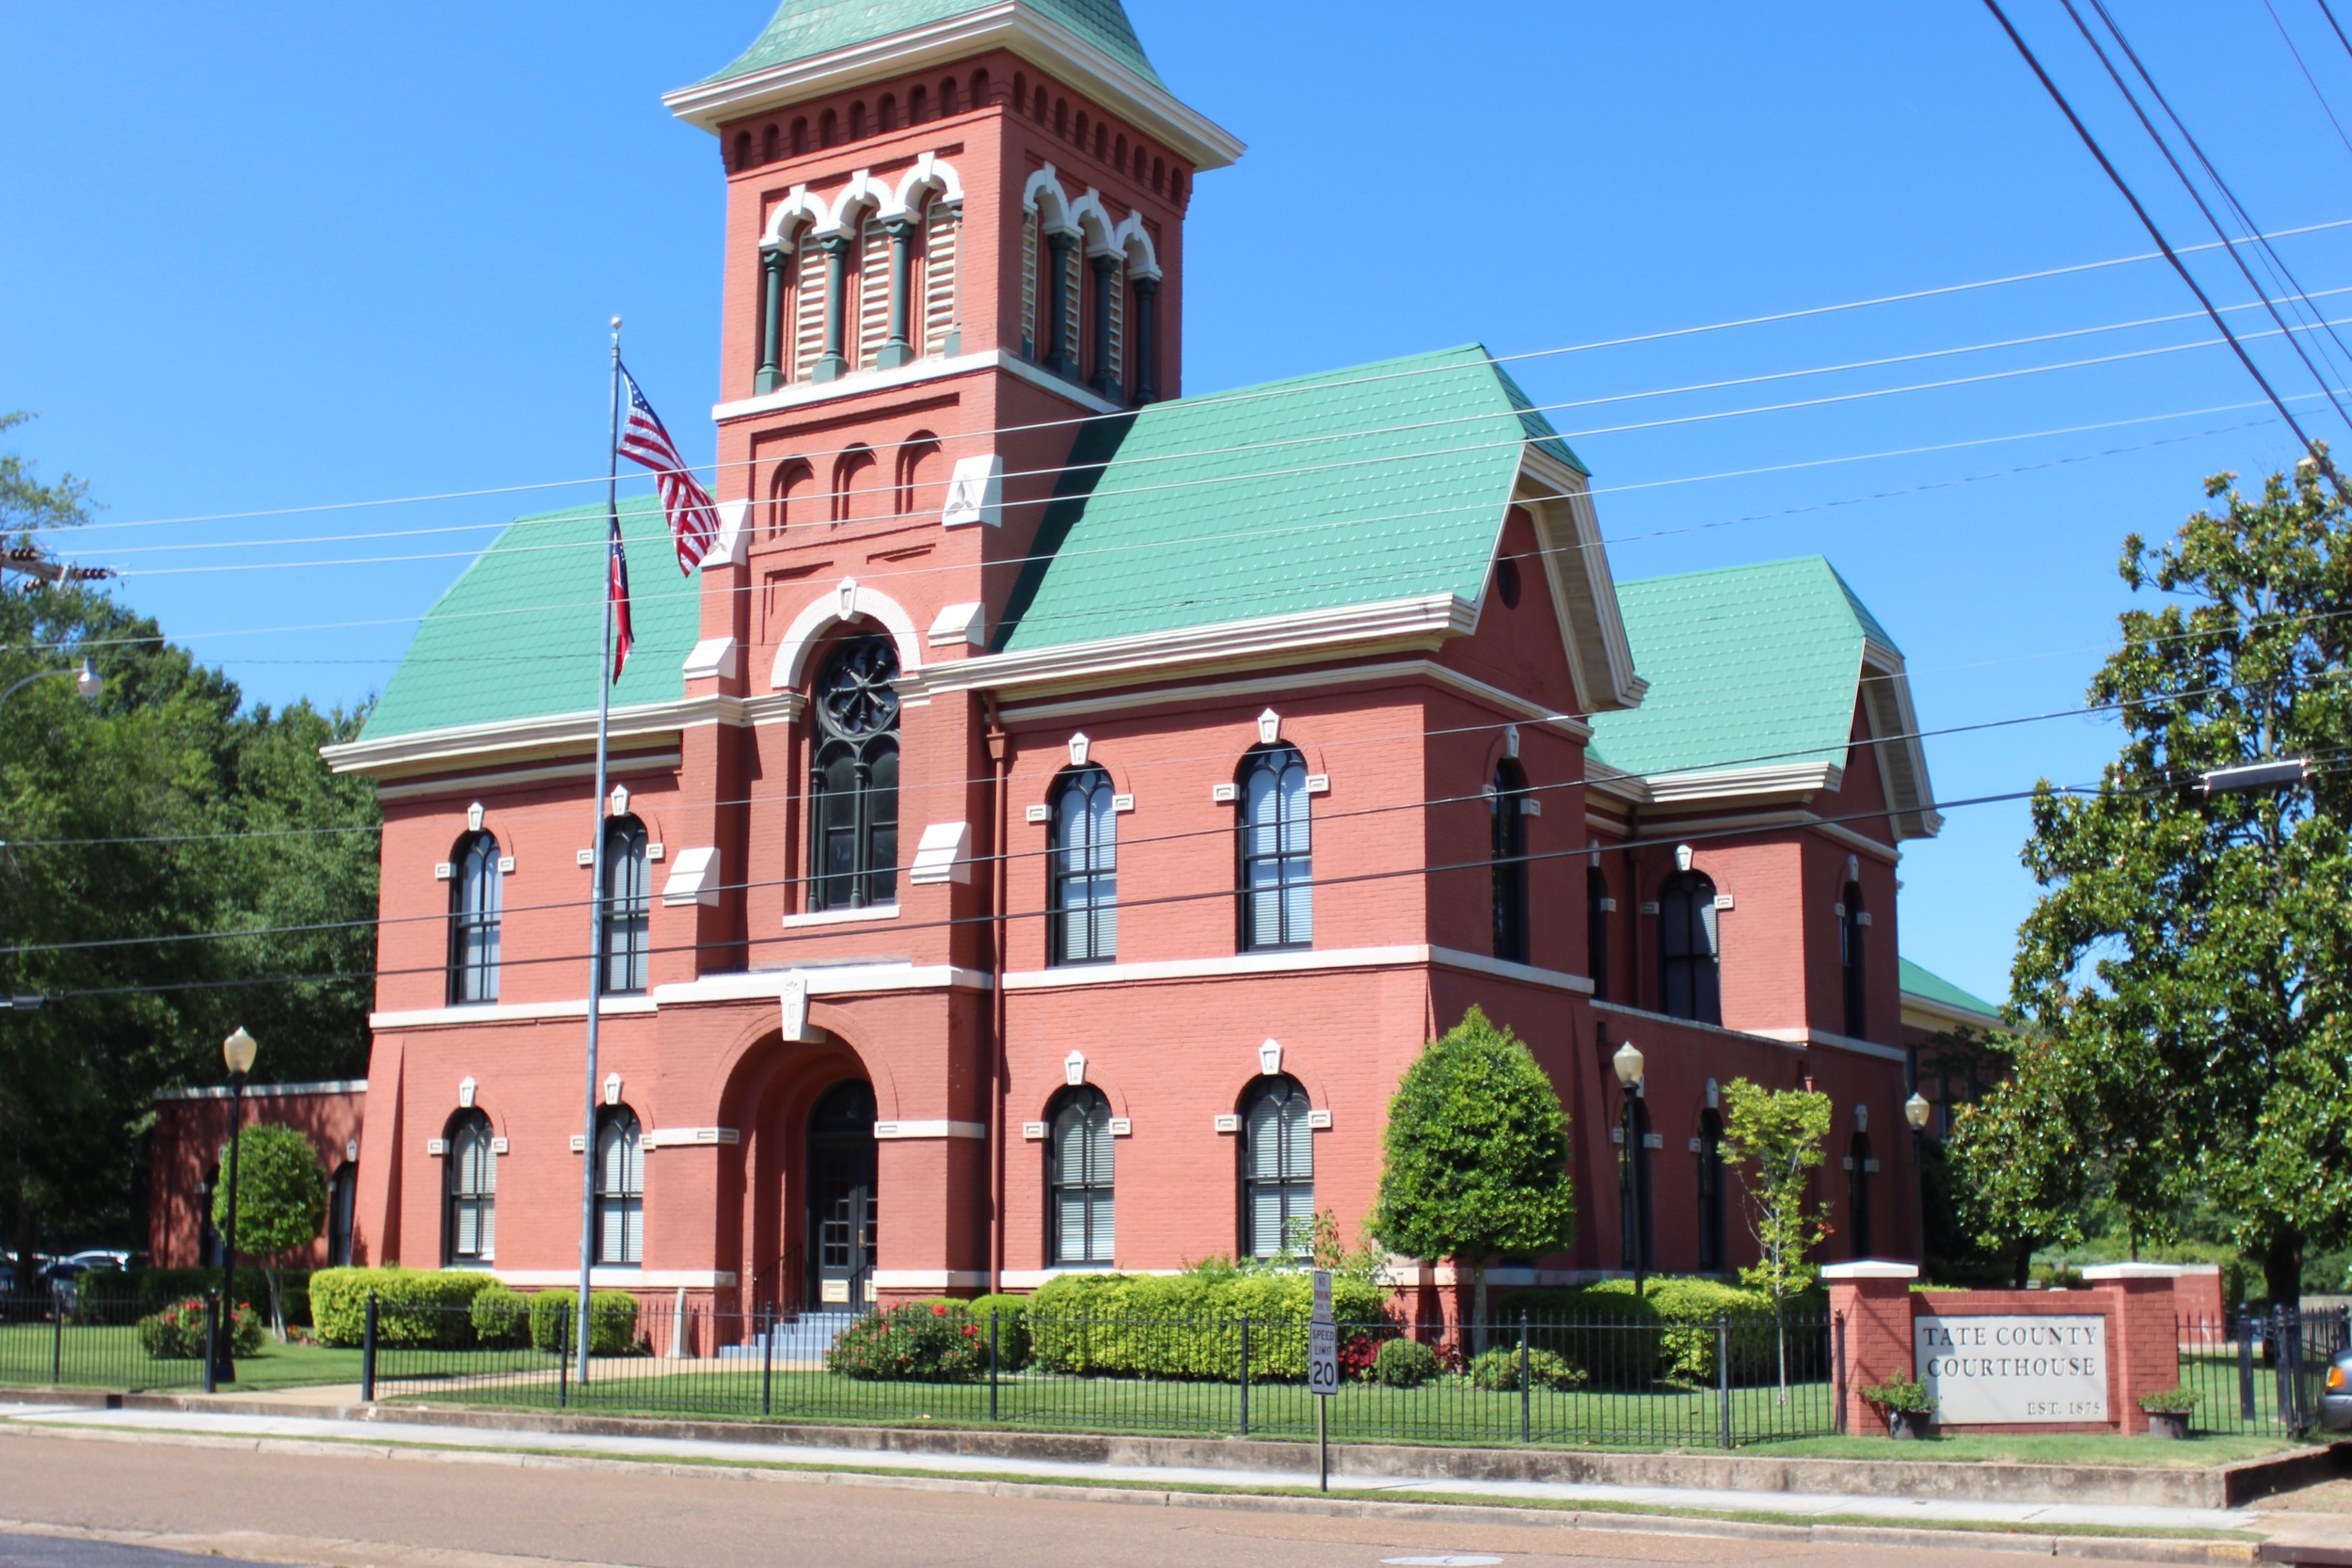 Tate County Courthouse